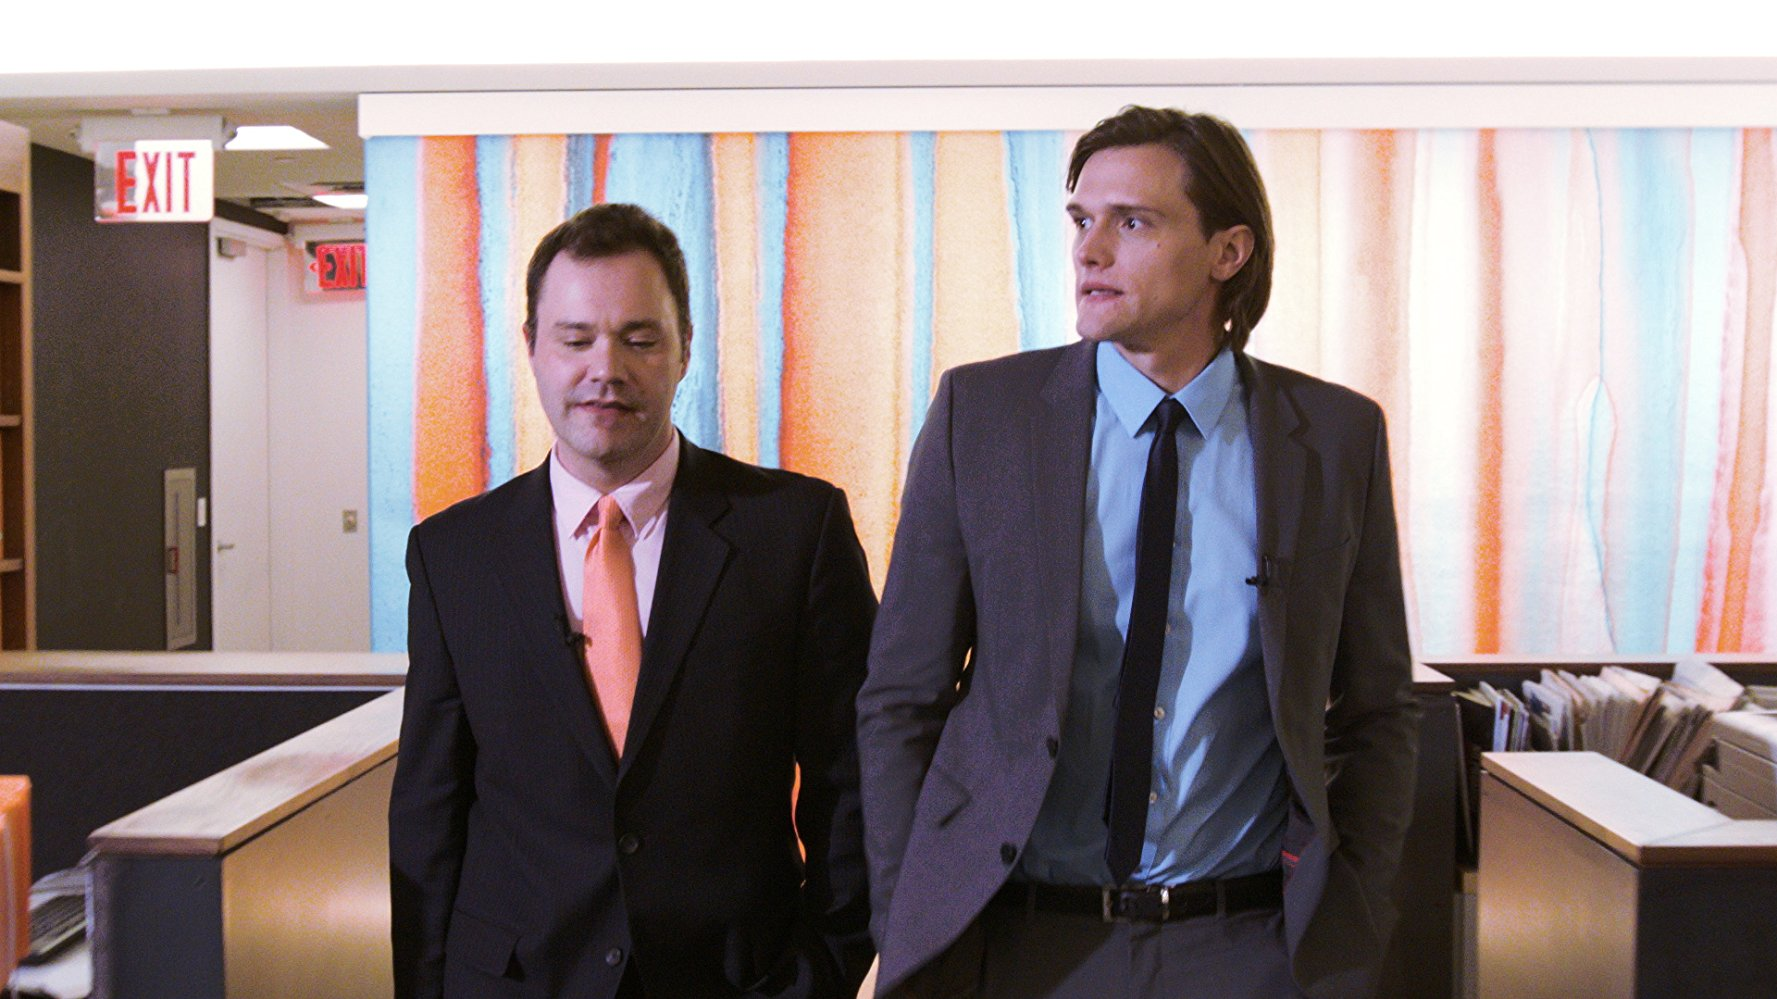 Wilson Cleveland and Hartley Sawyer walking in SPiN (2015)